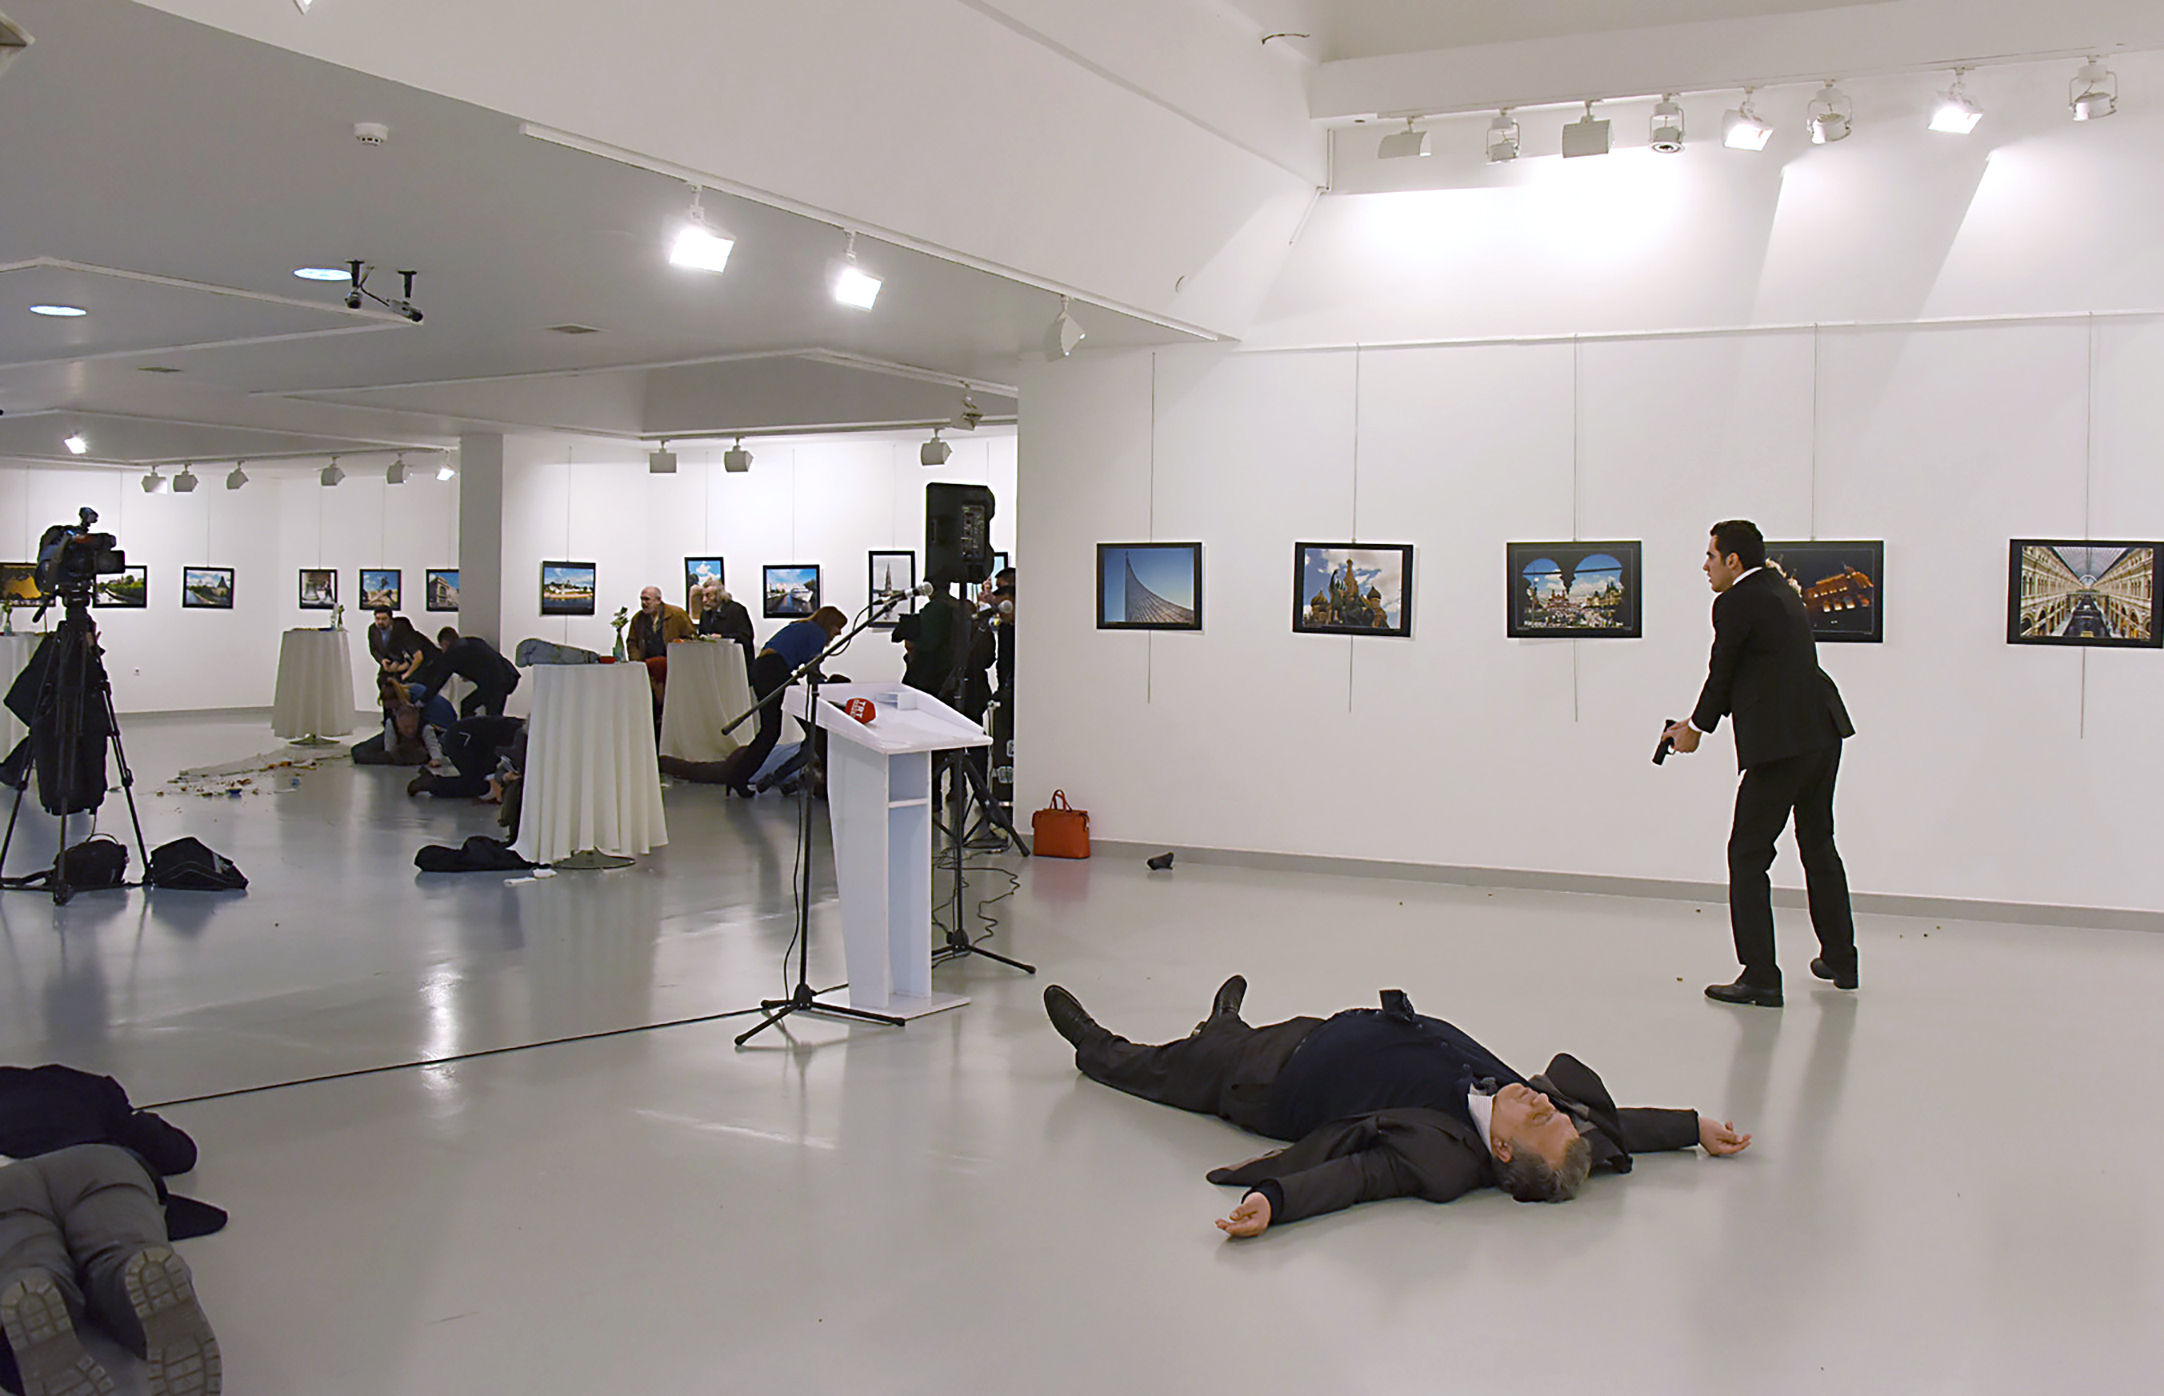 Andrey Karlov, Russia's ambassador to Turkey, lays on the ground after being shot by a gunman at a photo exhibit in Ankara on Dec. 19. He later died from his wounds.